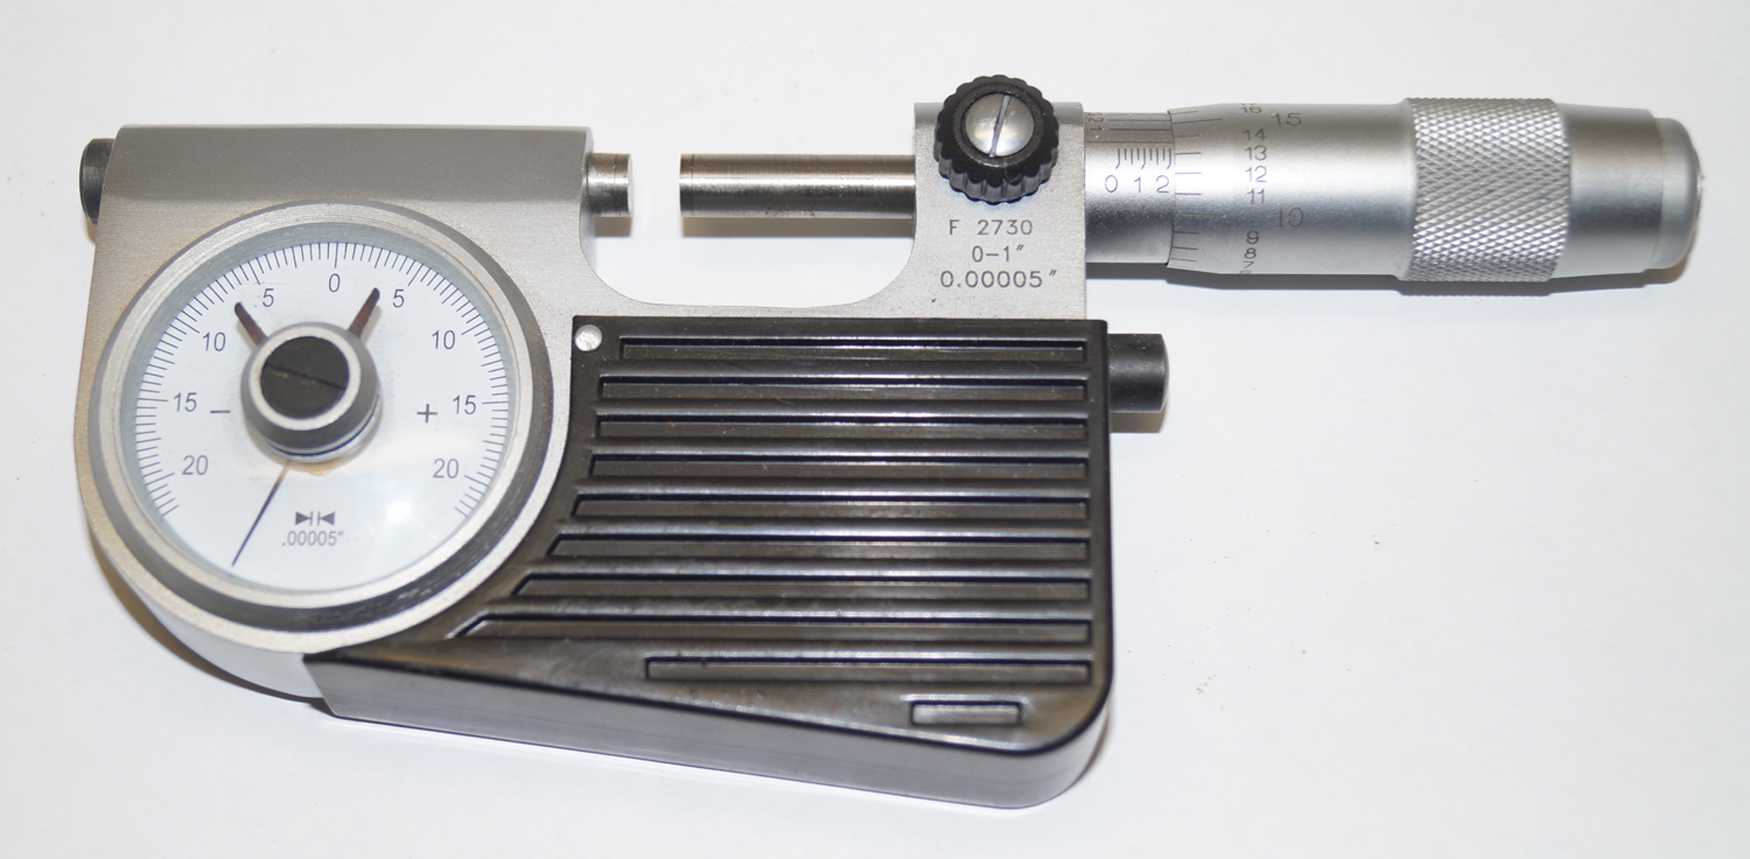 "Indicating Micrometer 0-1"" x 0.00005"" Shars"